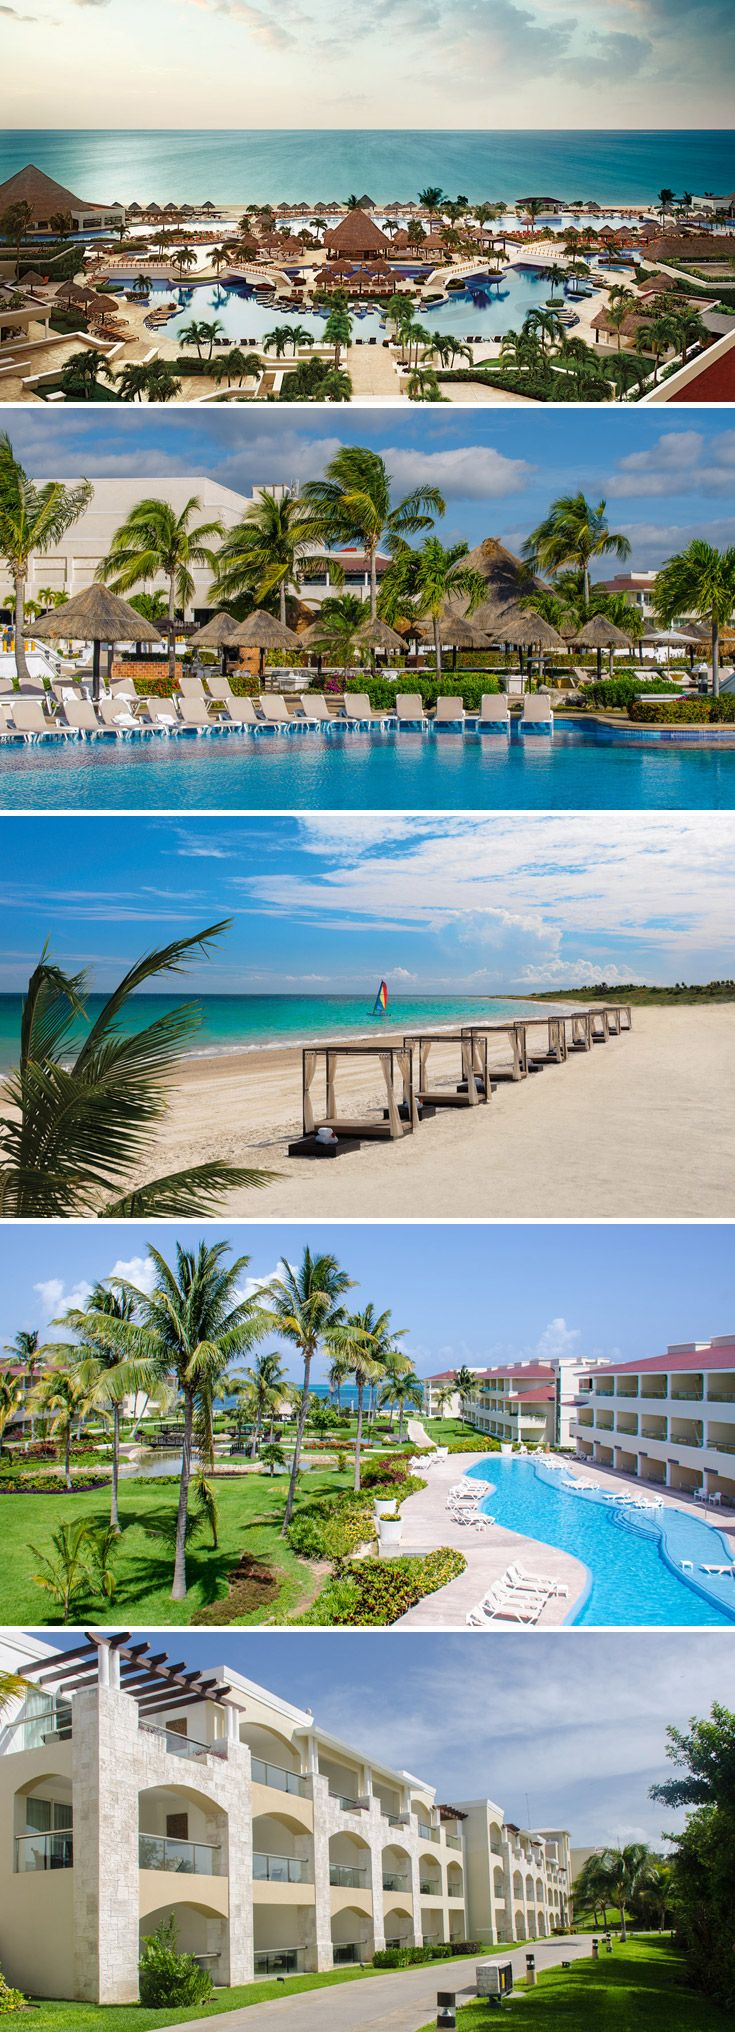 The moon palace is the palace resorts flagship all inclusive resort in cancun mexico